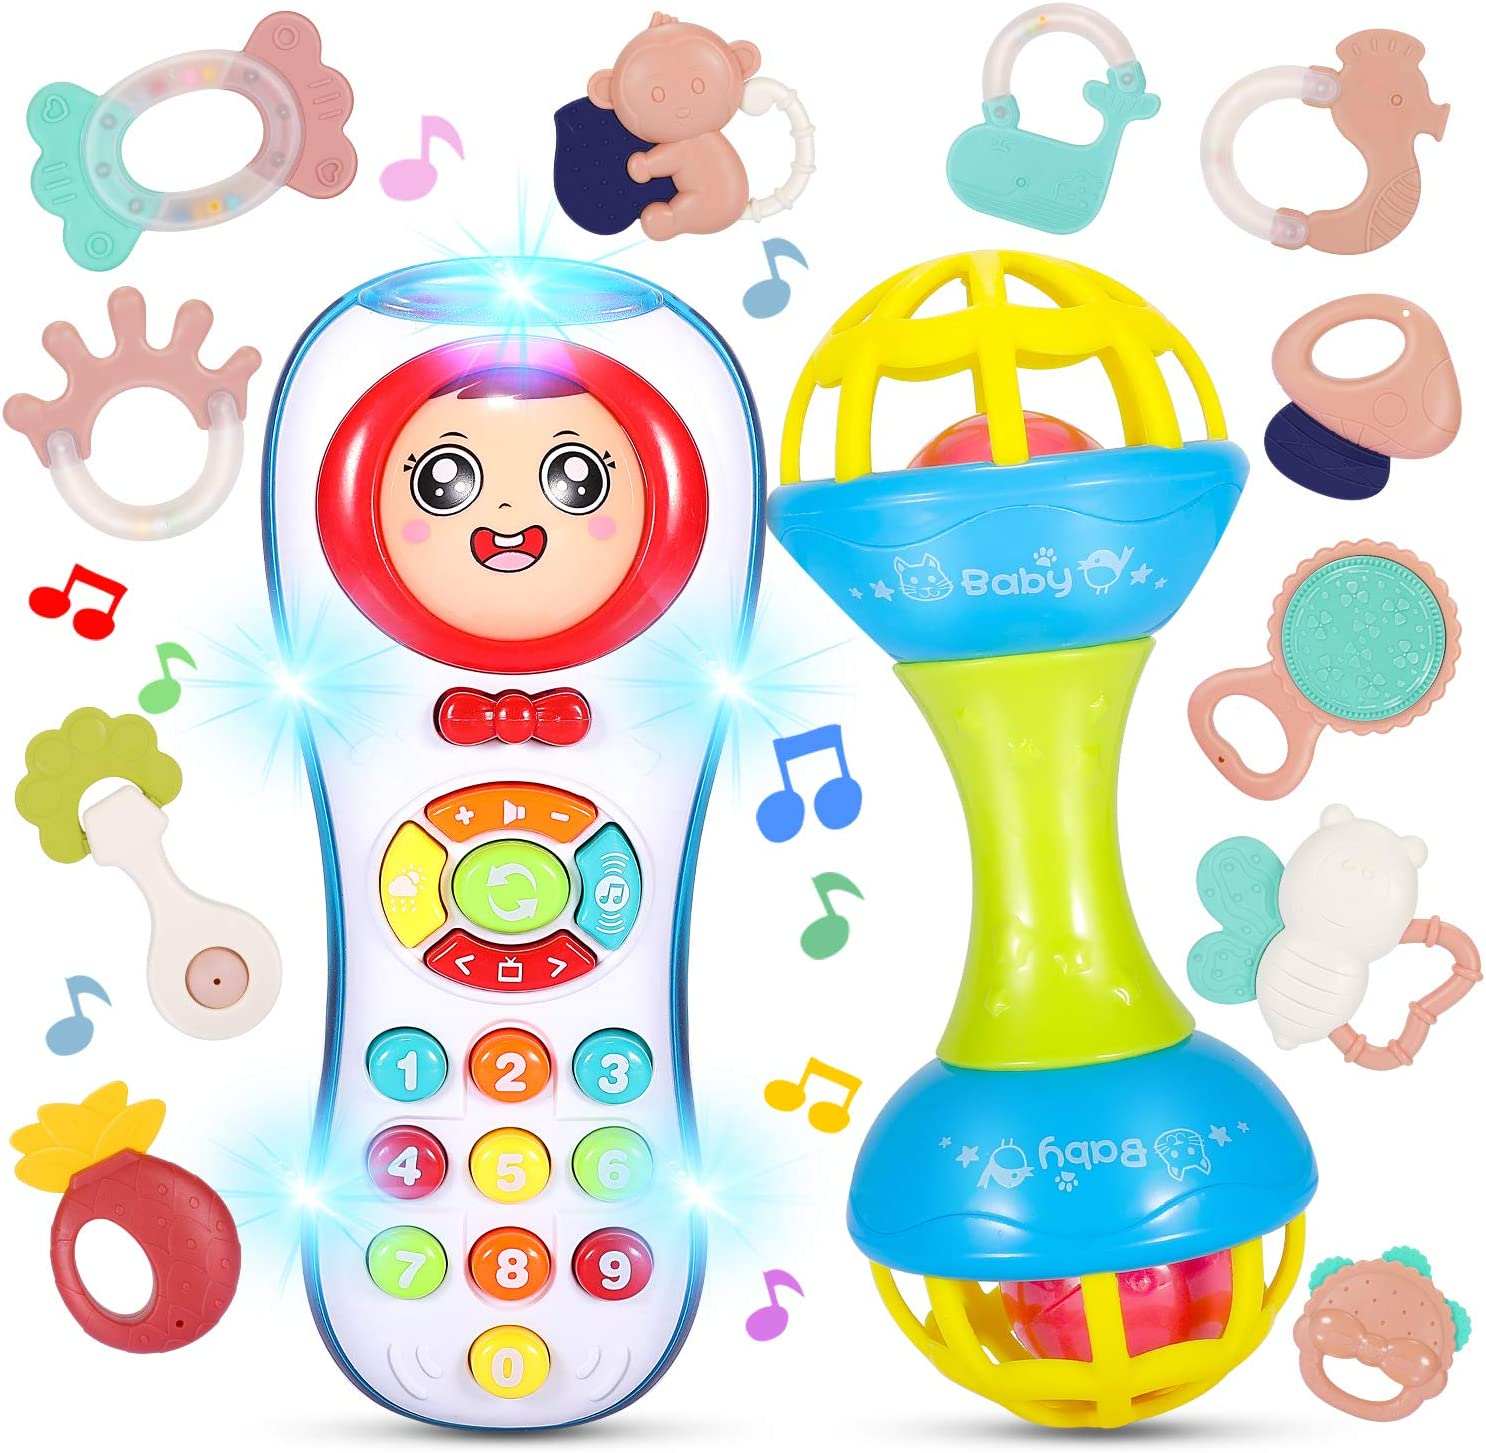 Learning Toys Gift for 6 12 Month Baby Infant Boy Girl 8 7 9 INTMEDIC Baby Rattle Set Toys 5 Pc Toddler Bear Musical Toy Rattles for Babies Set Shaker Grab Spin Roll Rattle Ball 10